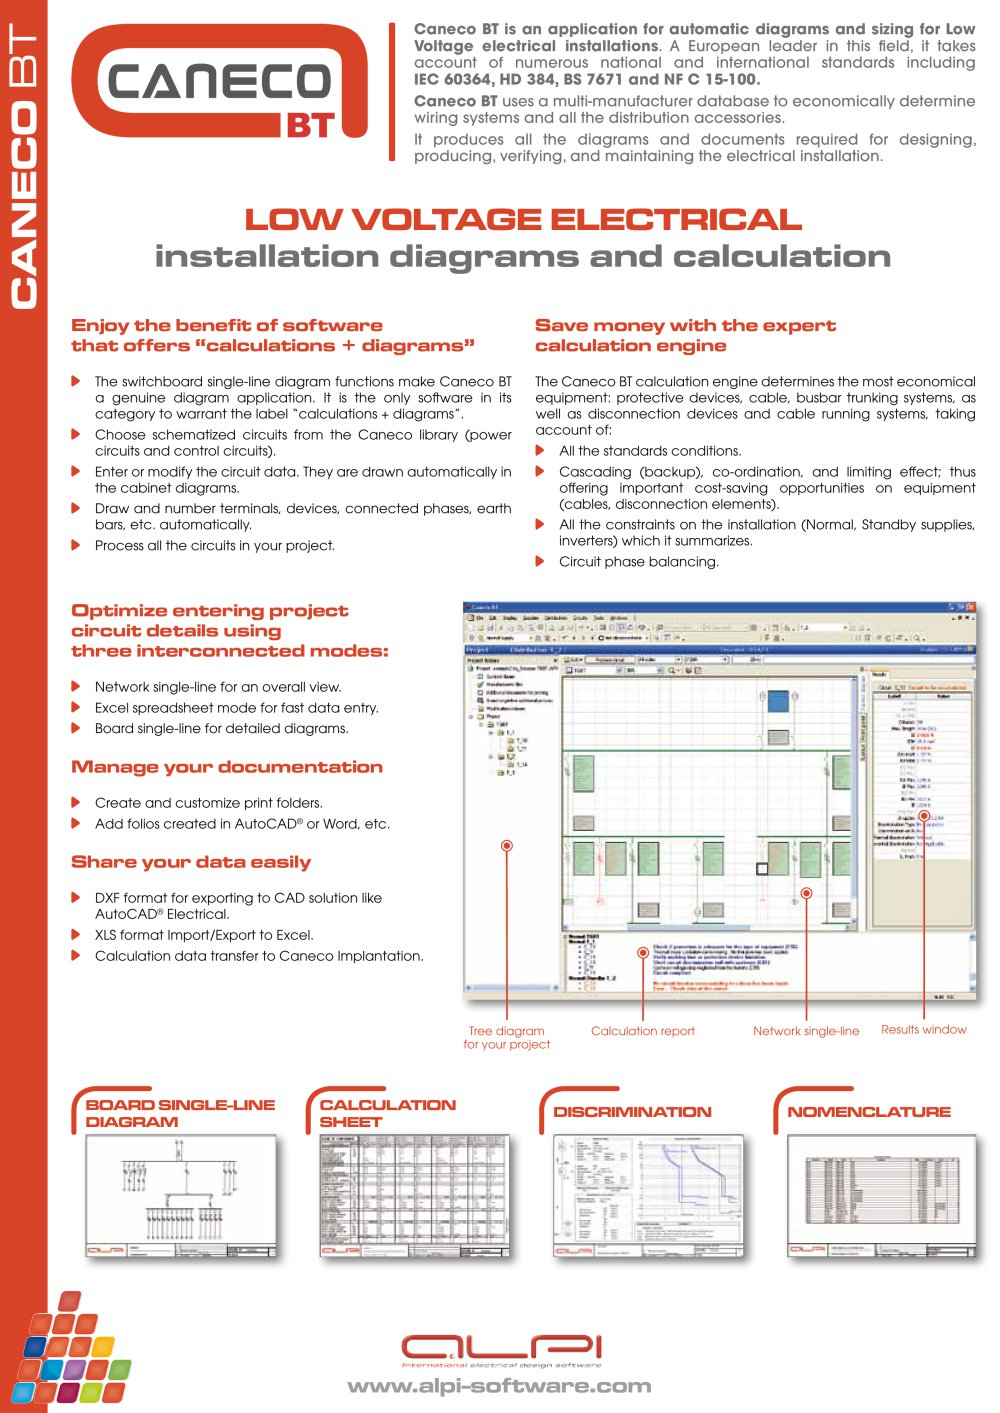 Caneco bt software for low voltage engineering alpi pdf caneco bt software for low voltage engineering 1 2 pages greentooth Choice Image